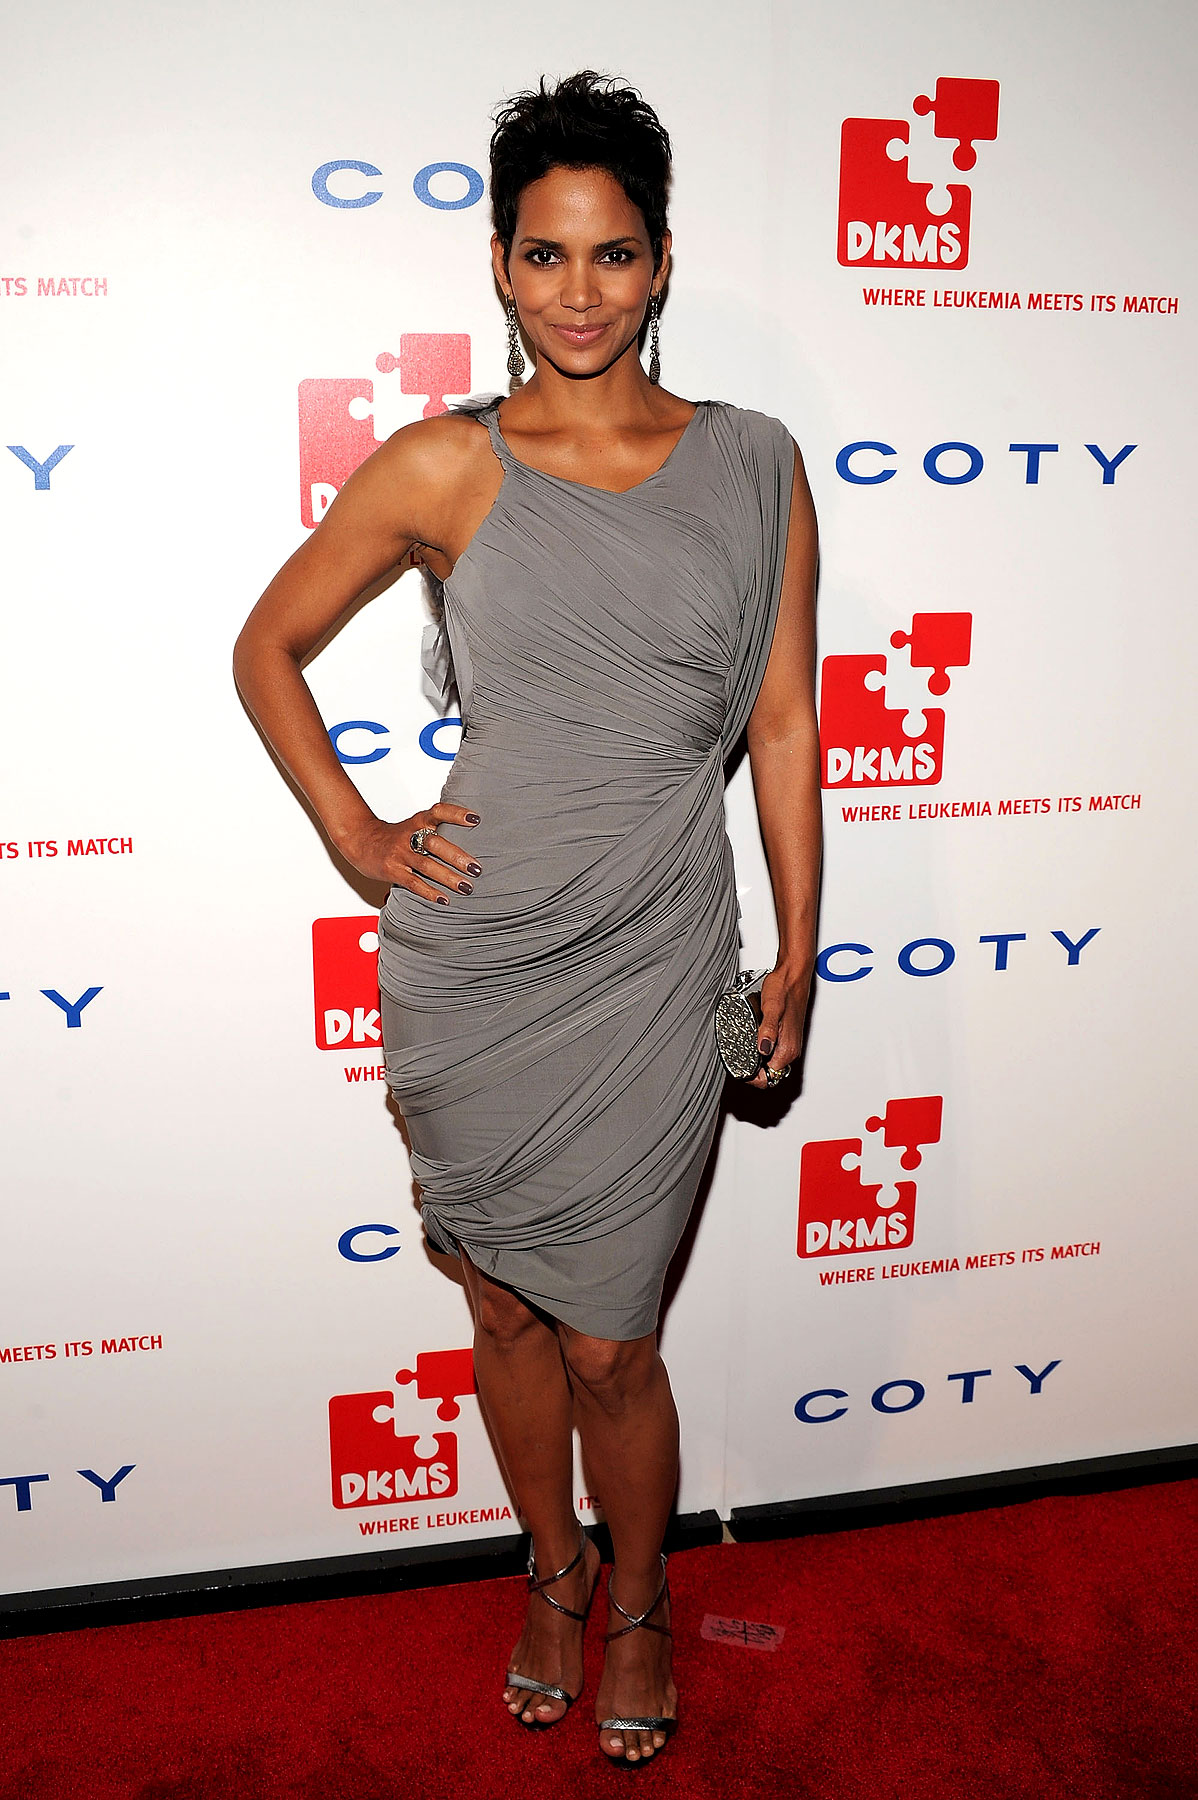 Fashion FTW: Halle Berry Dominates The Red Carpet (PHOTOS)